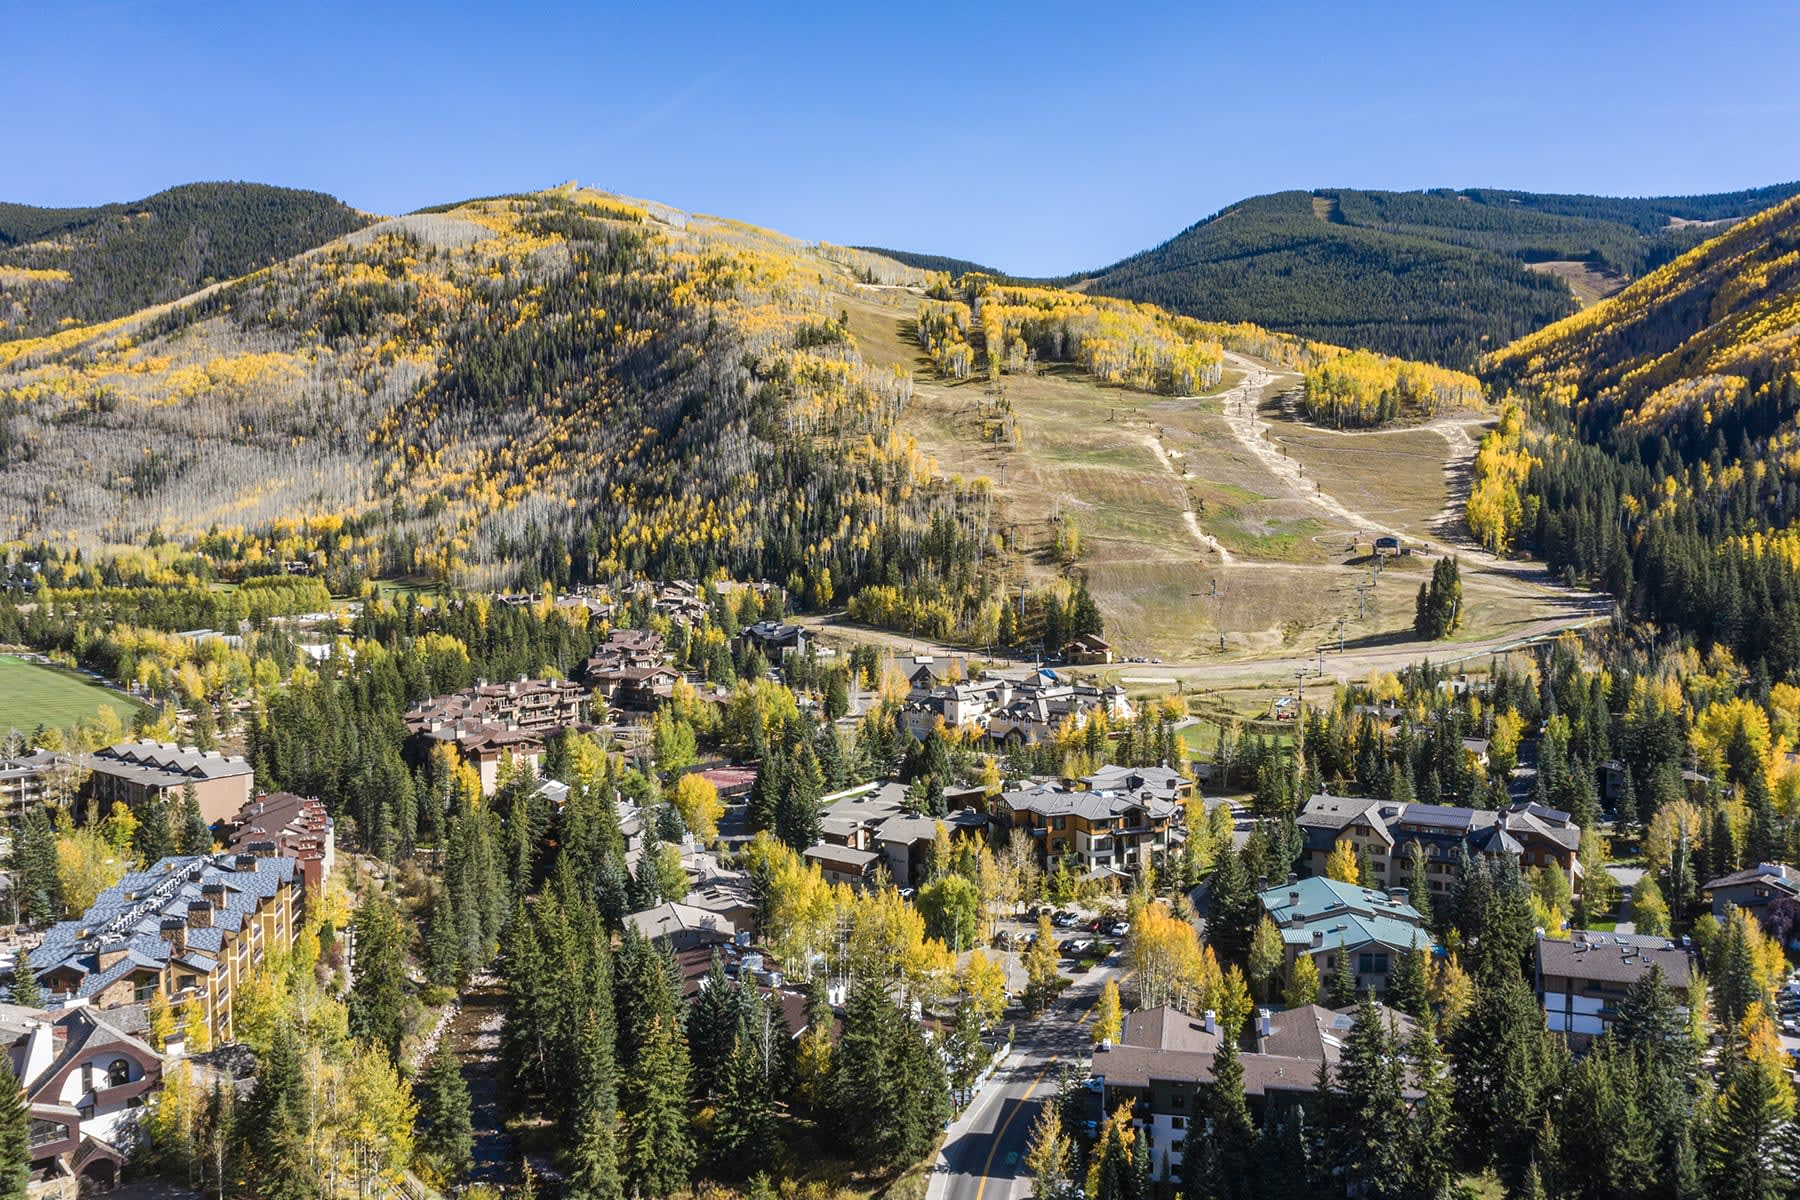 Land Title Market Analysis • September 2020 • Eagle County